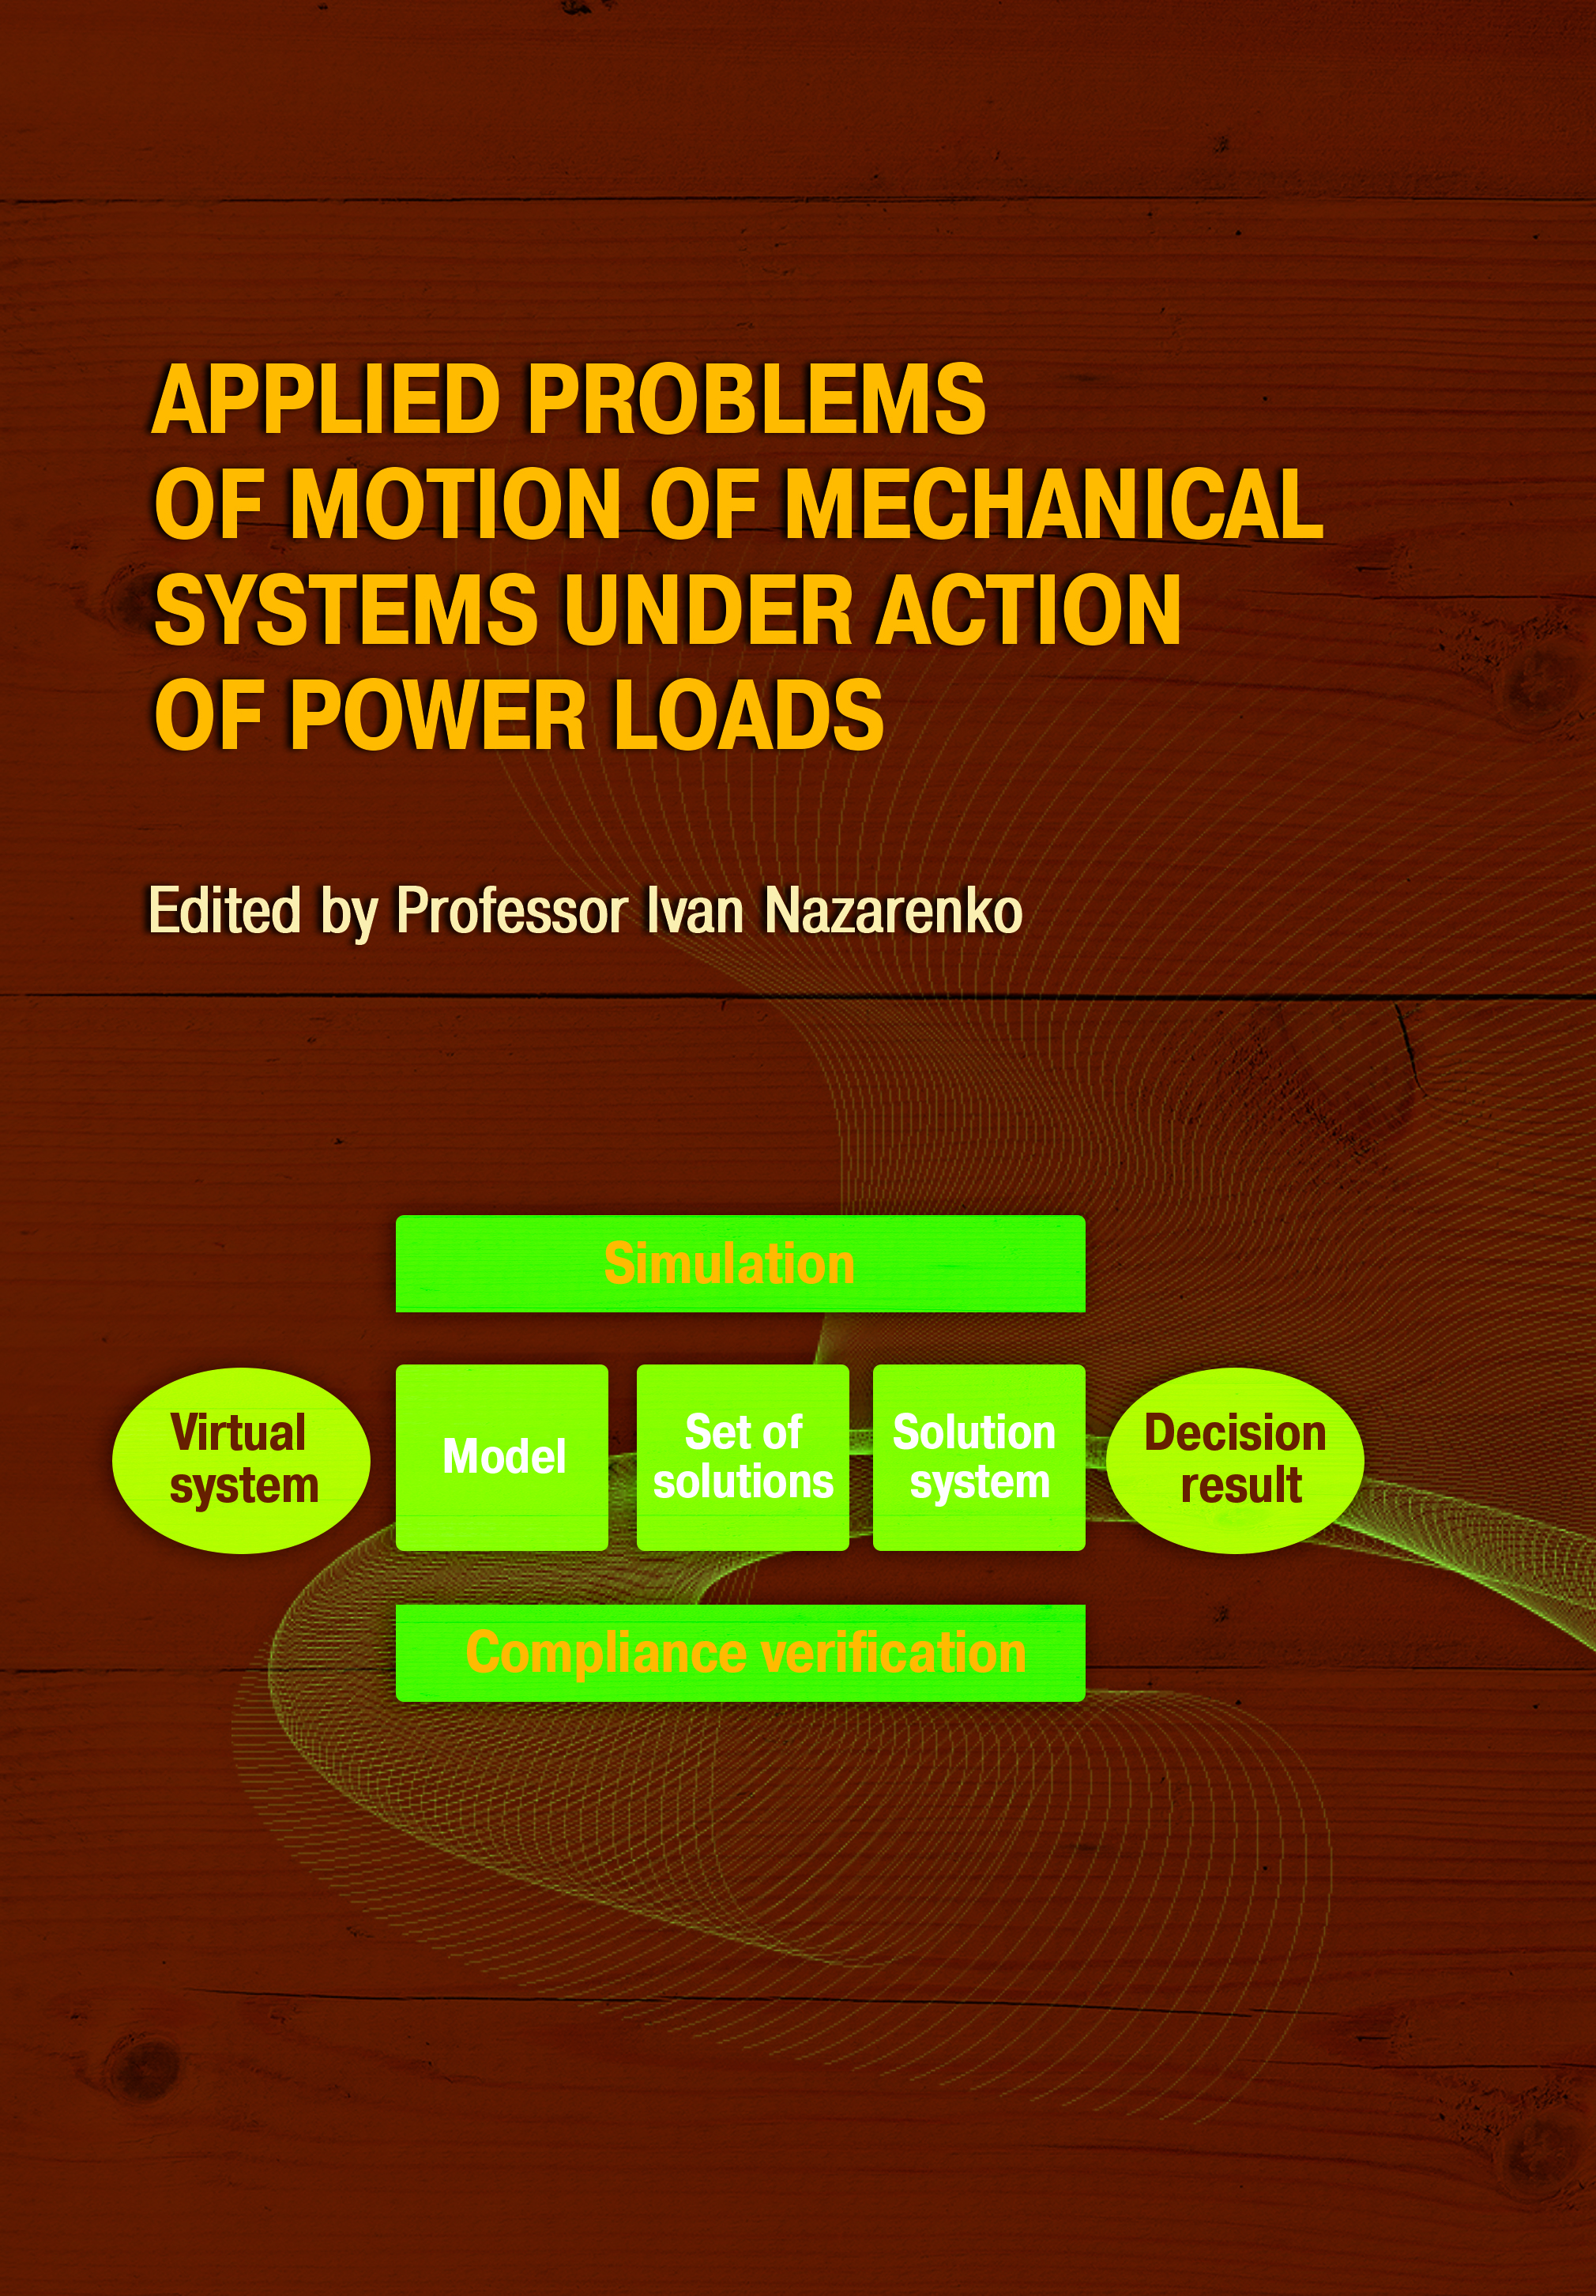 Applied problems of motion of mechanical systems under action of power loads